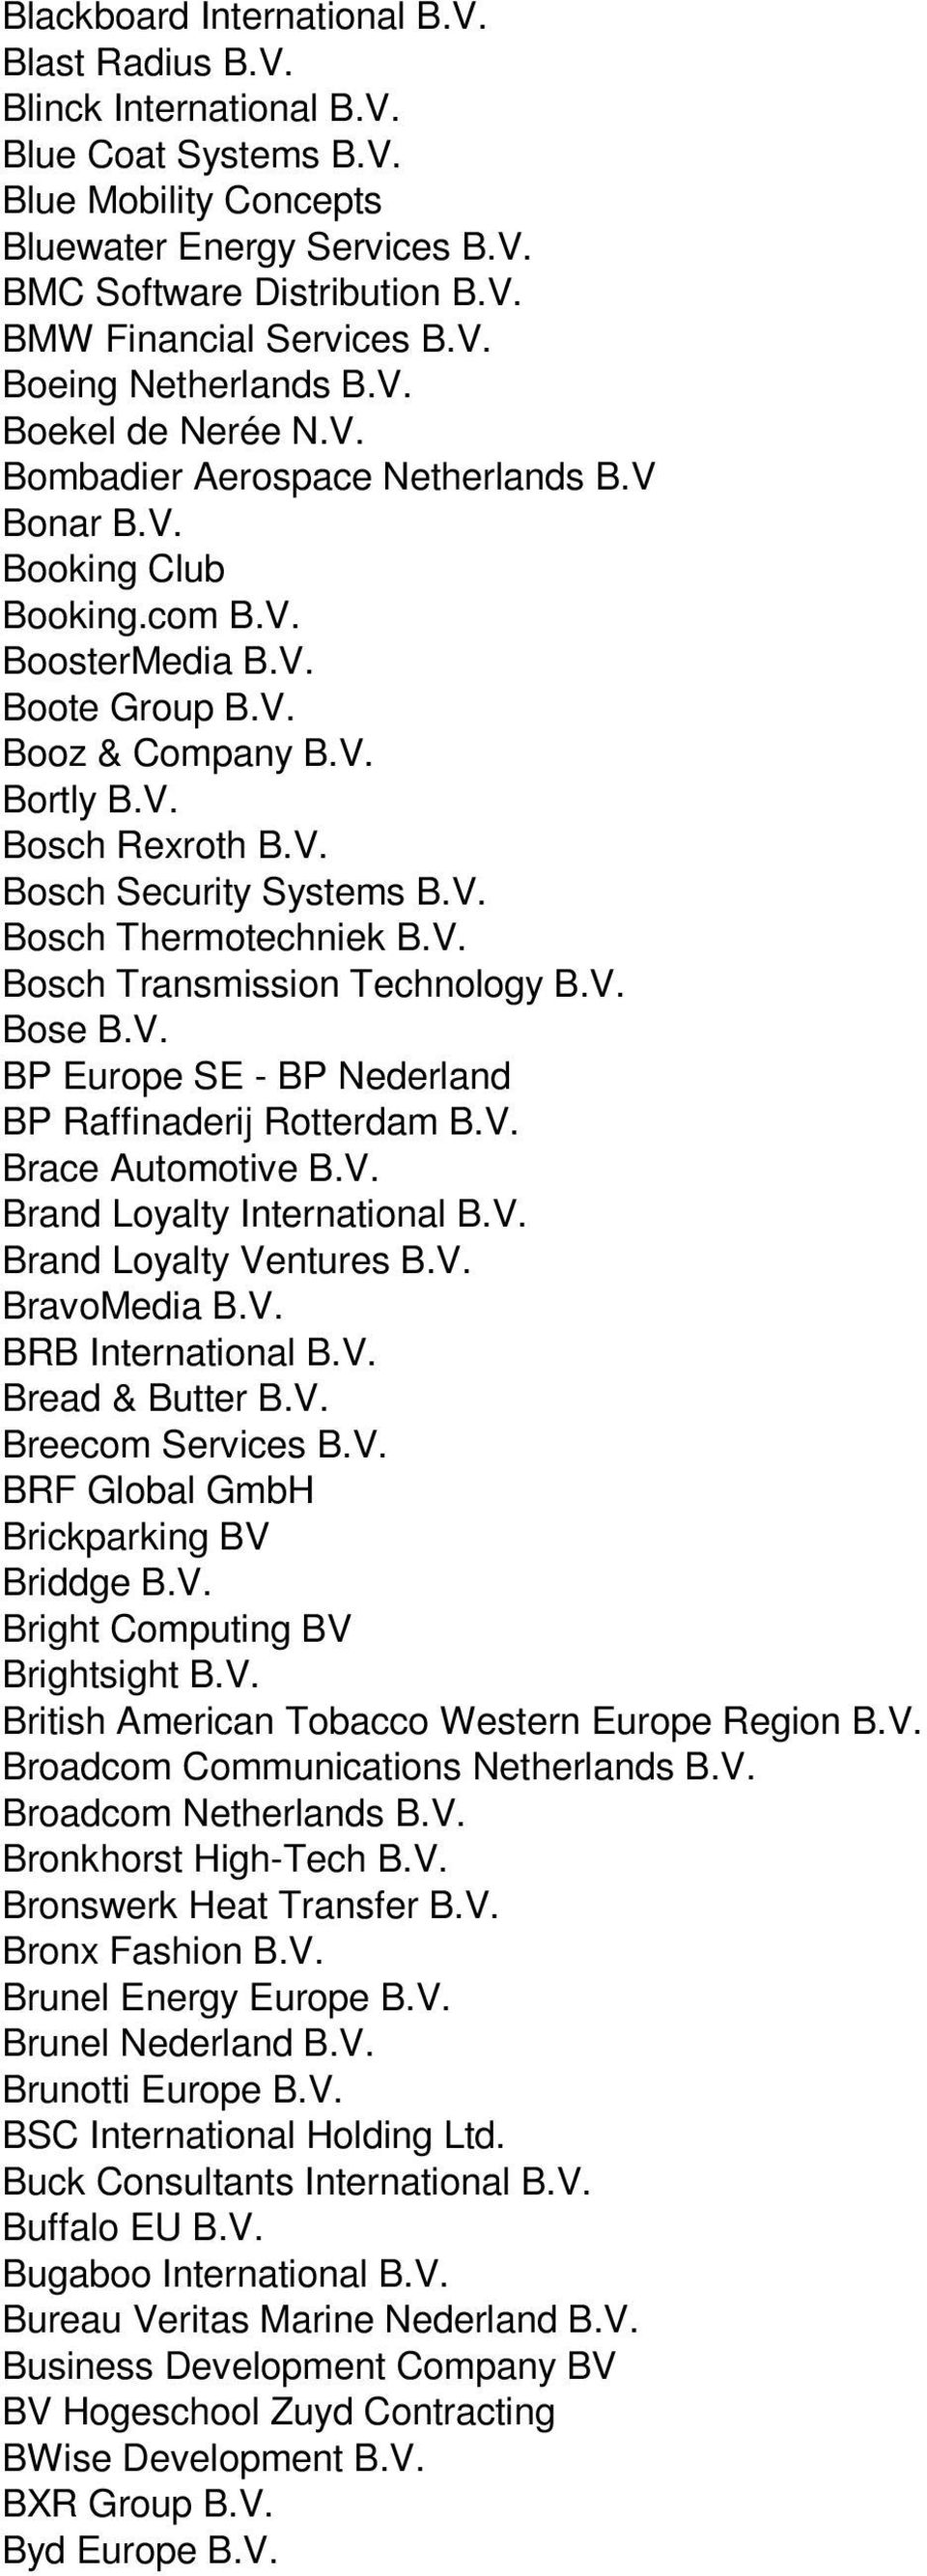 V. Bosch Security Systems B.V. Bosch Thermotechniek B.V. Bosch Transmission Technology B.V. Bose B.V. BP Europe SE - BP Nederland BP Raffinaderij Rotterdam B.V. Brace Automotive B.V. Brand Loyalty International B.